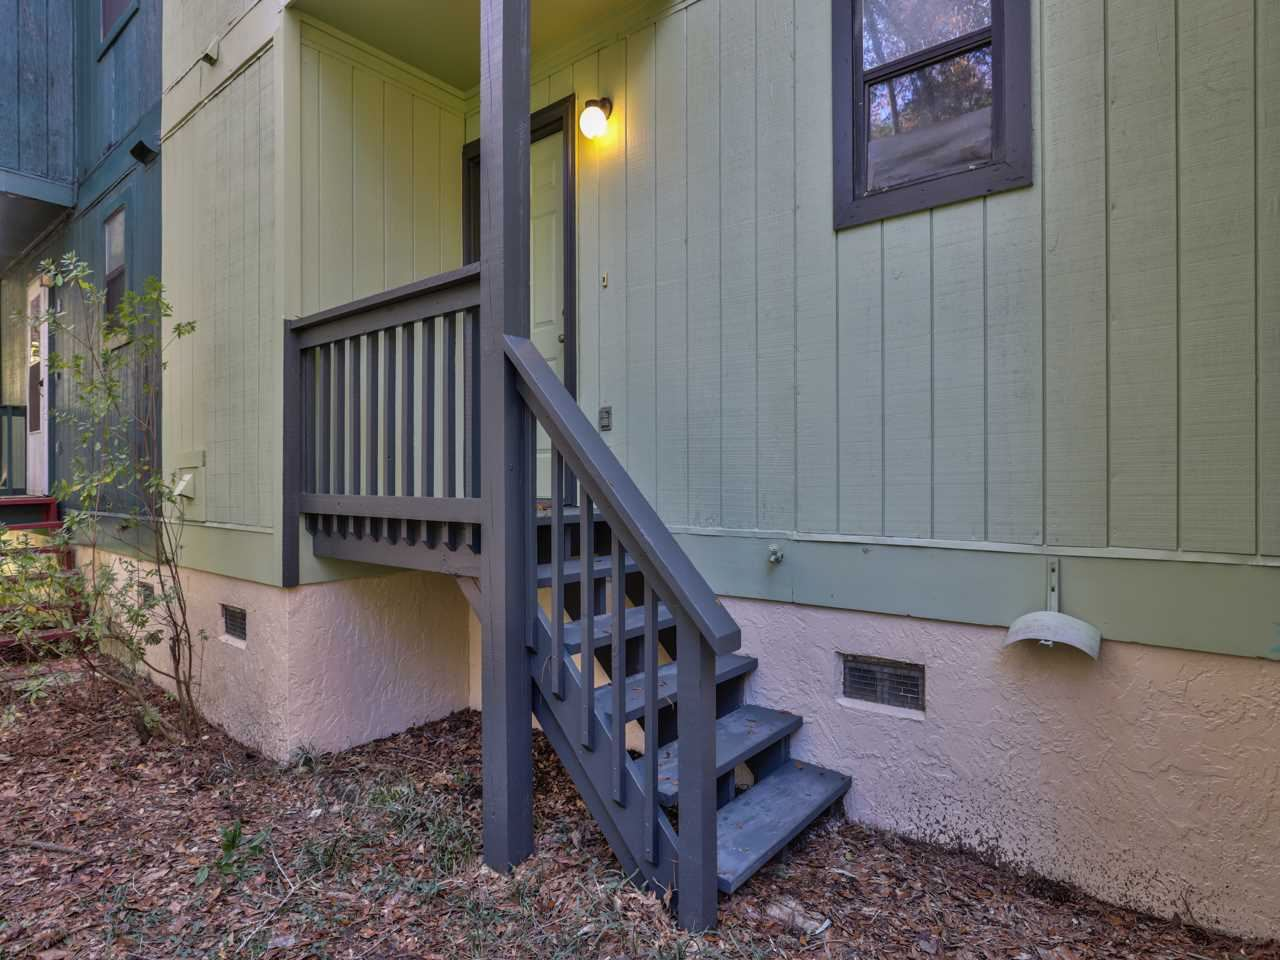 1200 Cross Creek Way #2, Tallahassee, FL 32301 - MLS#: 326804